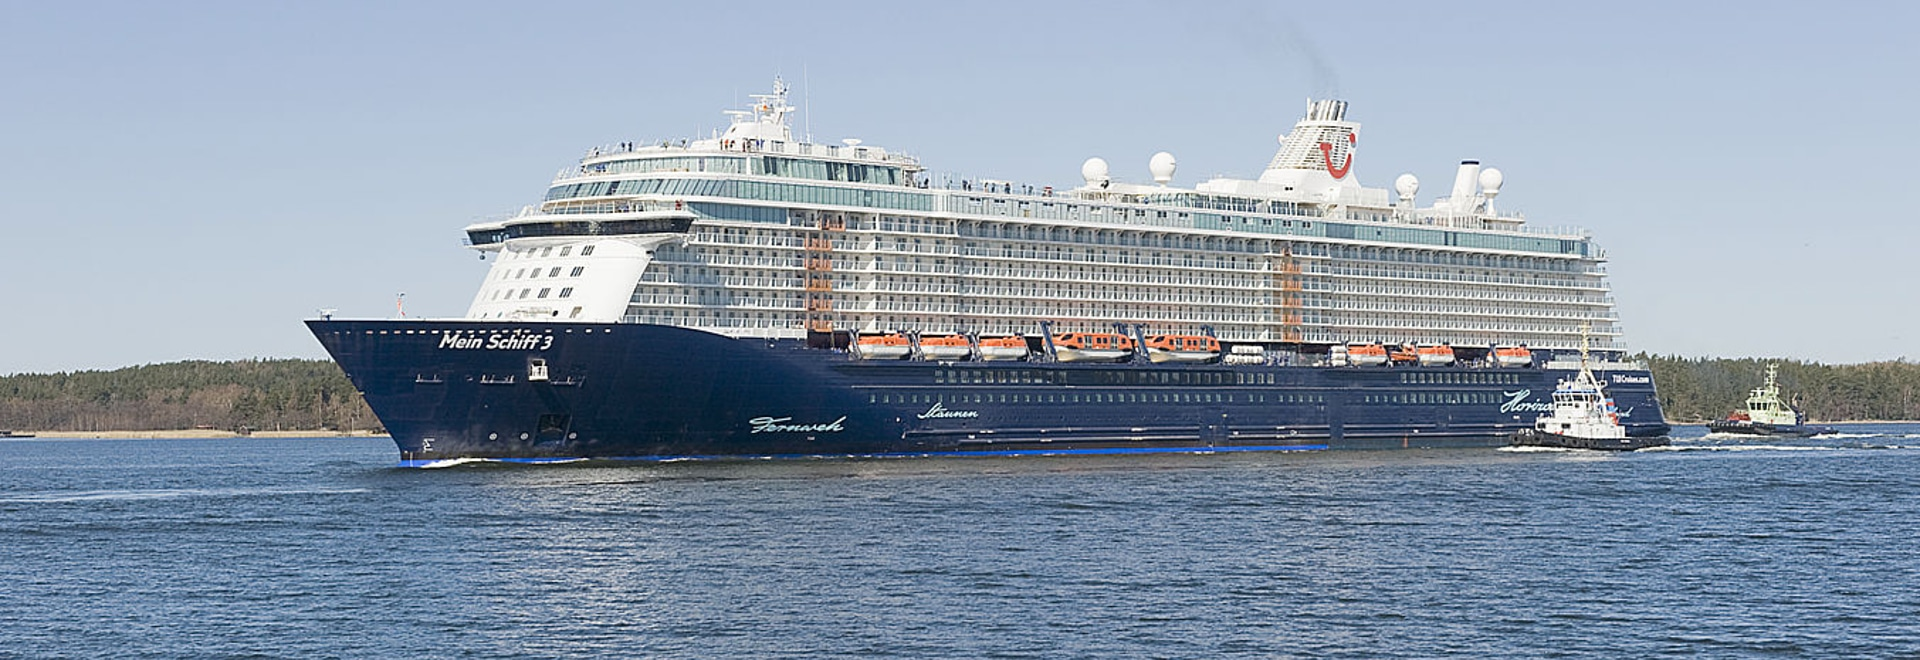 Meyer Turku Oy Celebrated the Float Out of Cruise Ship Mein Schiff 4